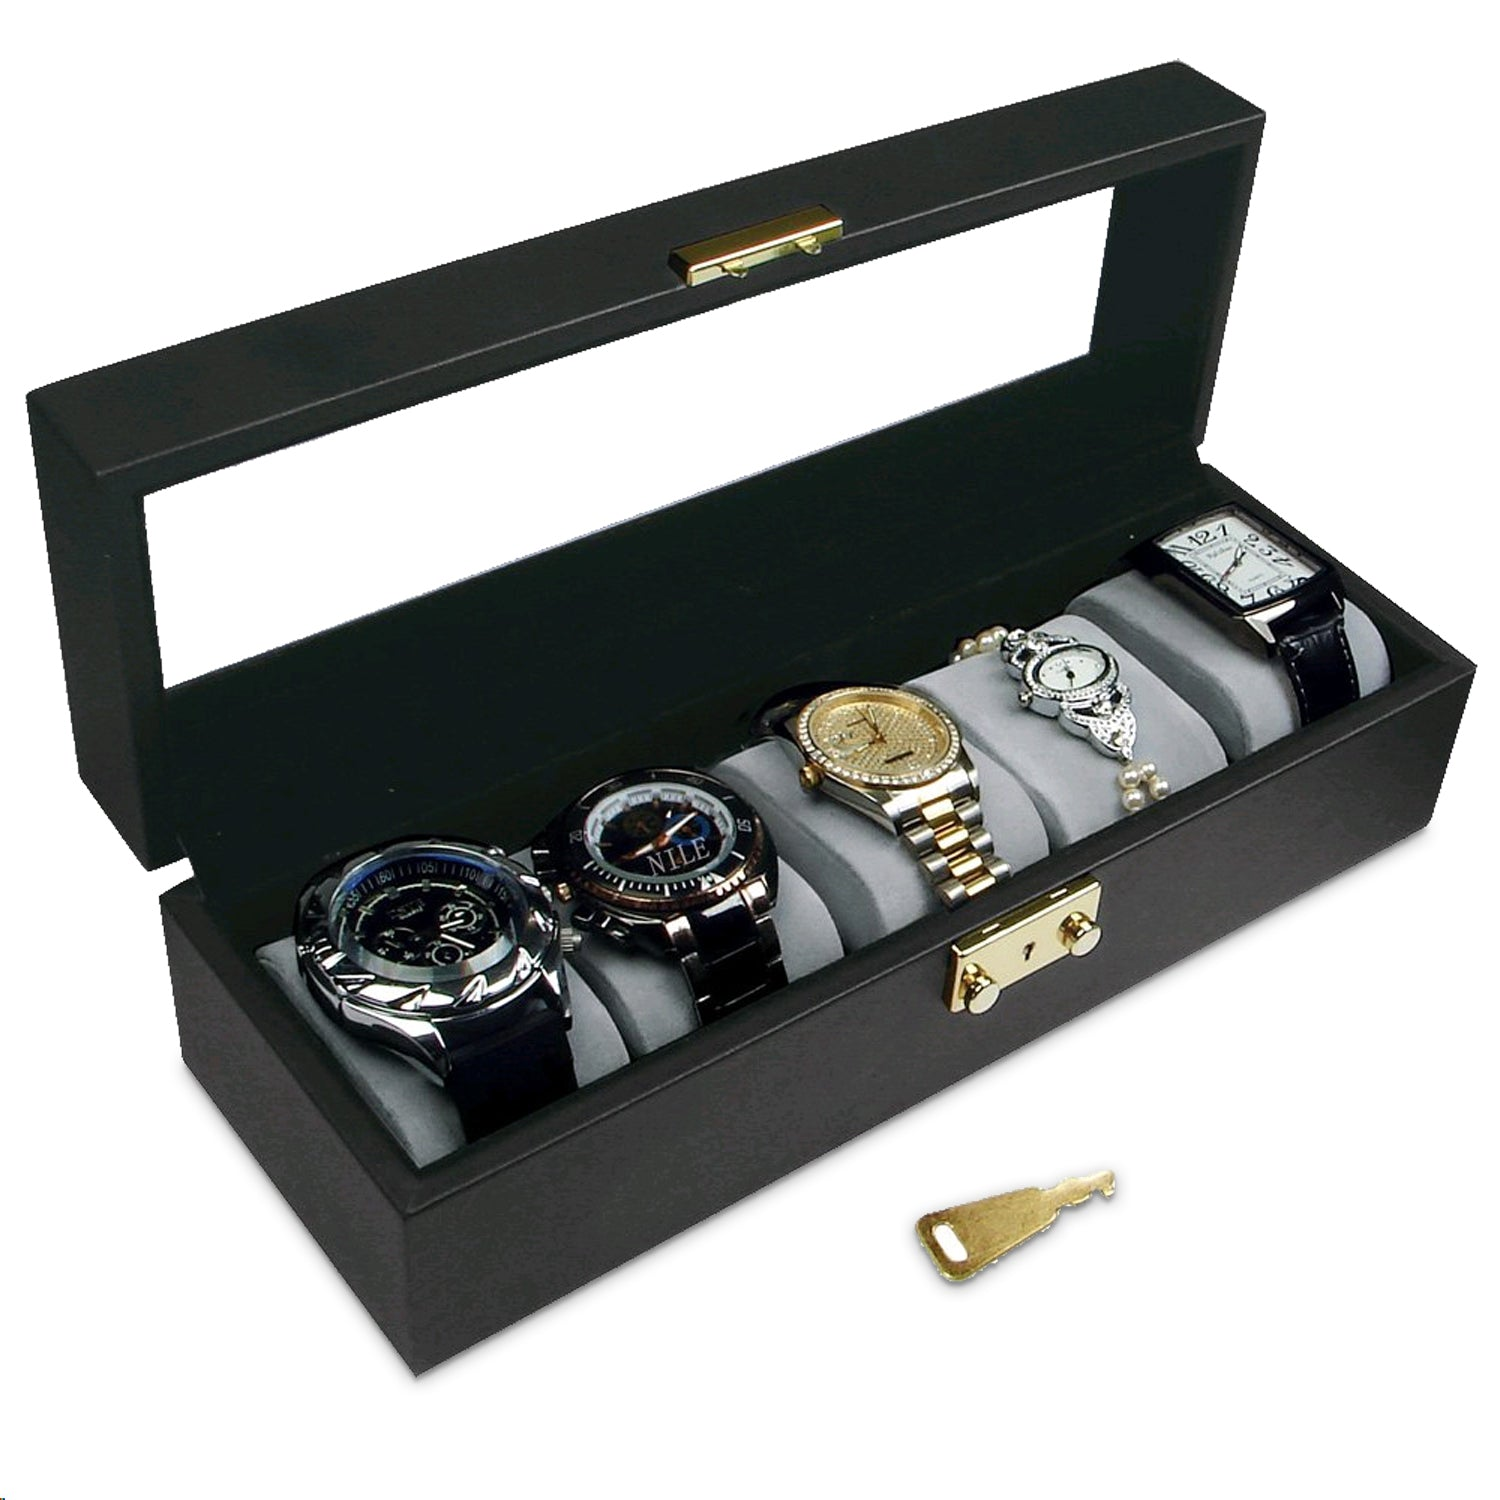 #CBW120 Glass Top Wooden Watch Case W/Key Lock - For 5 Watches, 11 5/8'' X 4'' X 3 1/4''H.